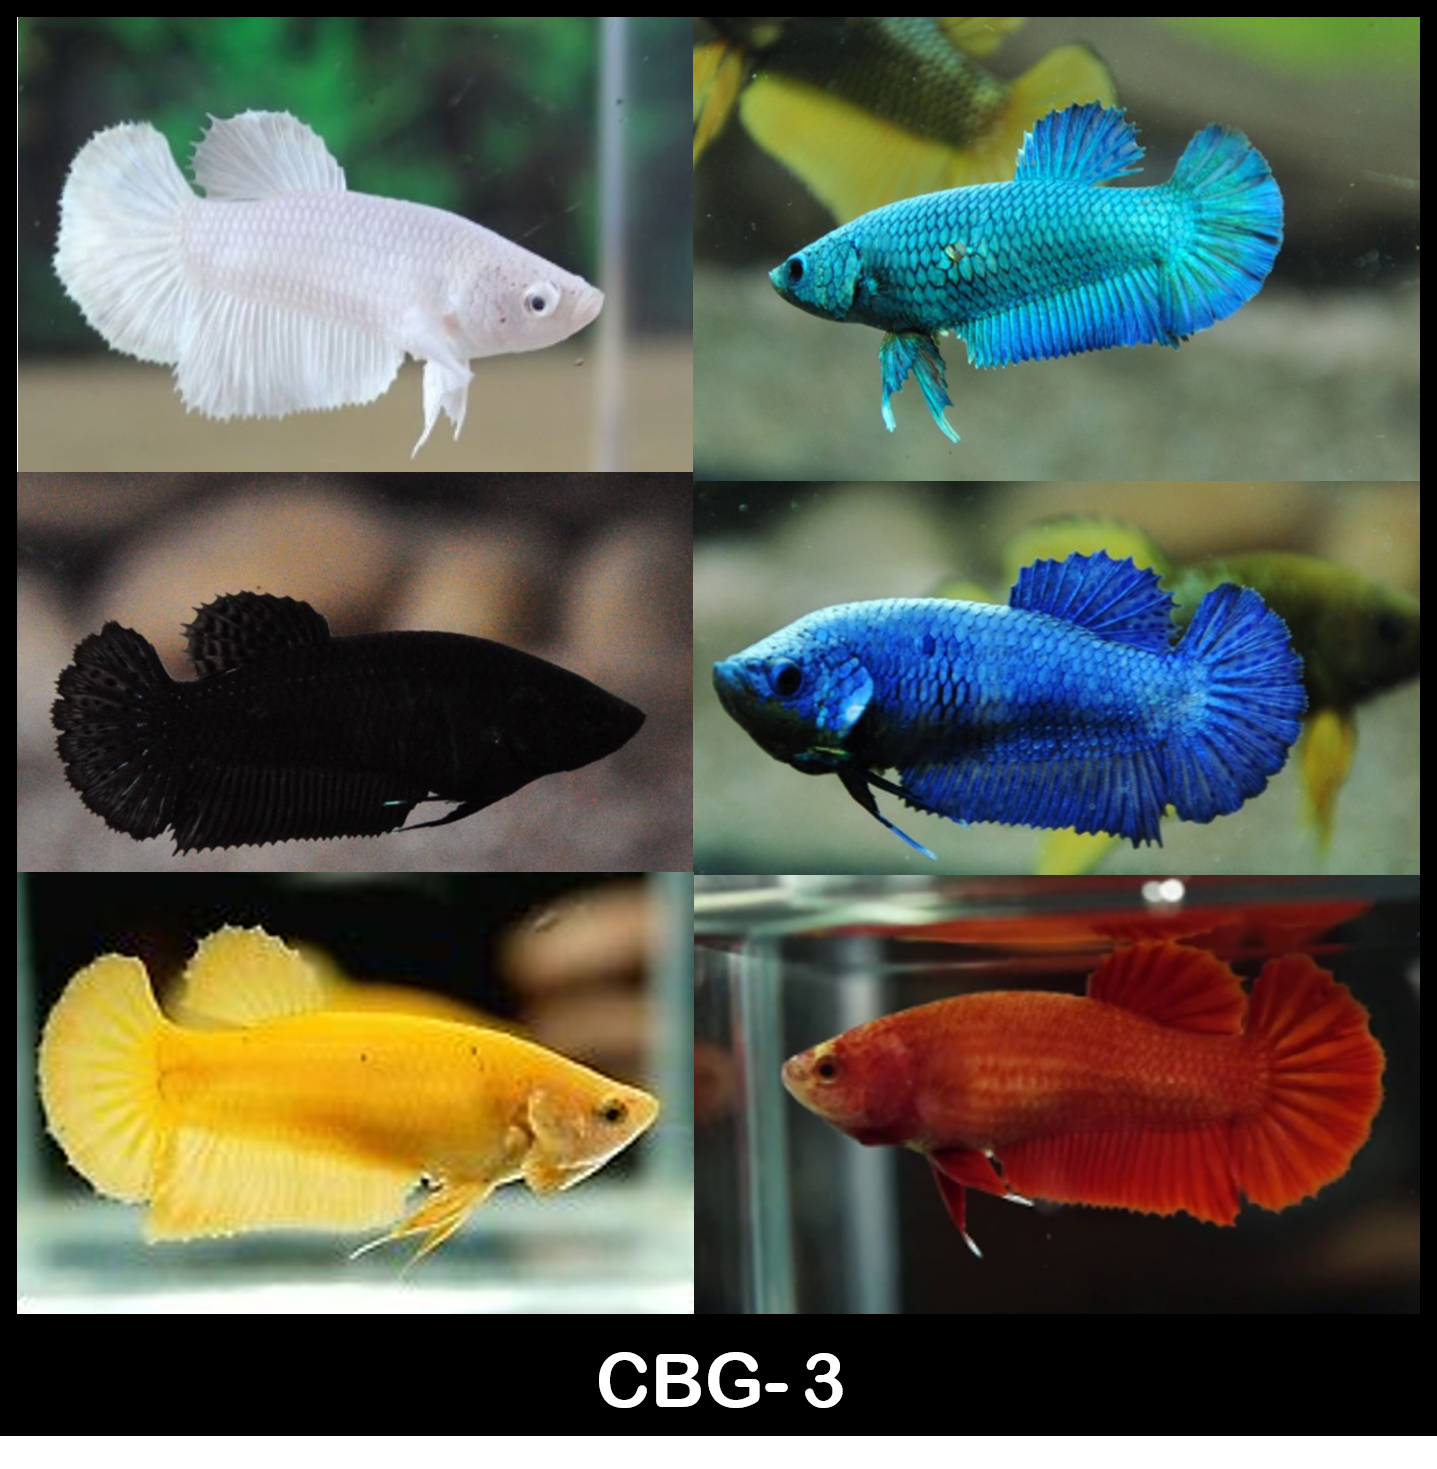 (CBG-03) Mixed solid colors Plakat Female Betta Buy 5 Get 1 Free $60,  Buy 1 for $12